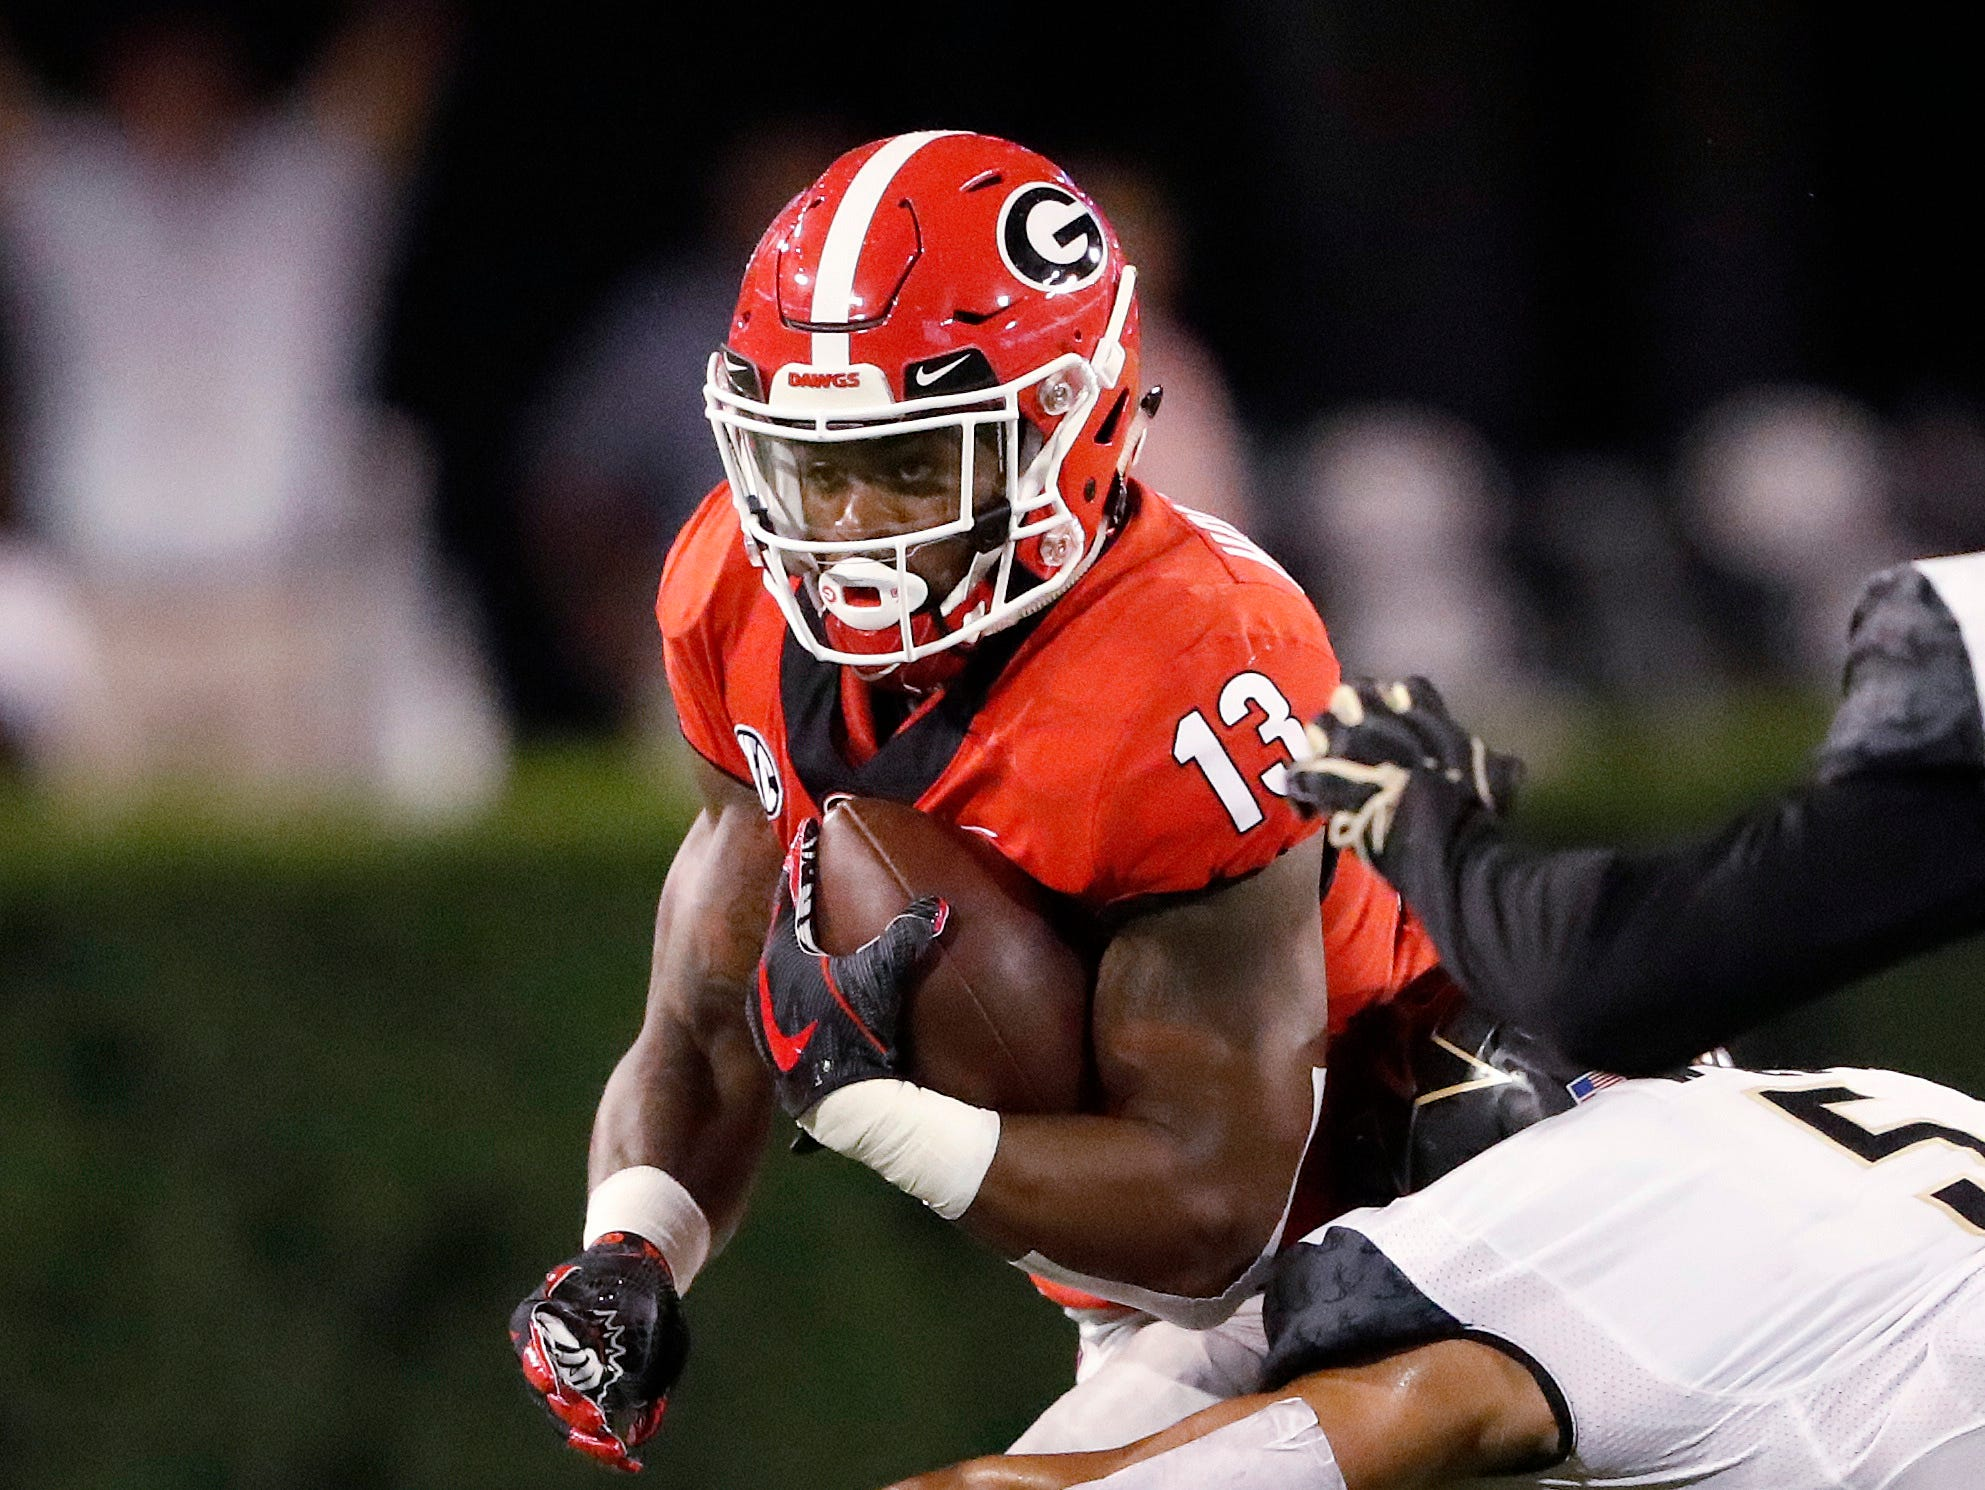 Georgia running back Elijah Holyfield (13) tries to get past Vanderbilt safety LaDarius Wiley (5) during the first half of an NCAA college football game Saturday, Oct. 6, 2018, in Atlanta. (AP Photo/John Bazemore)